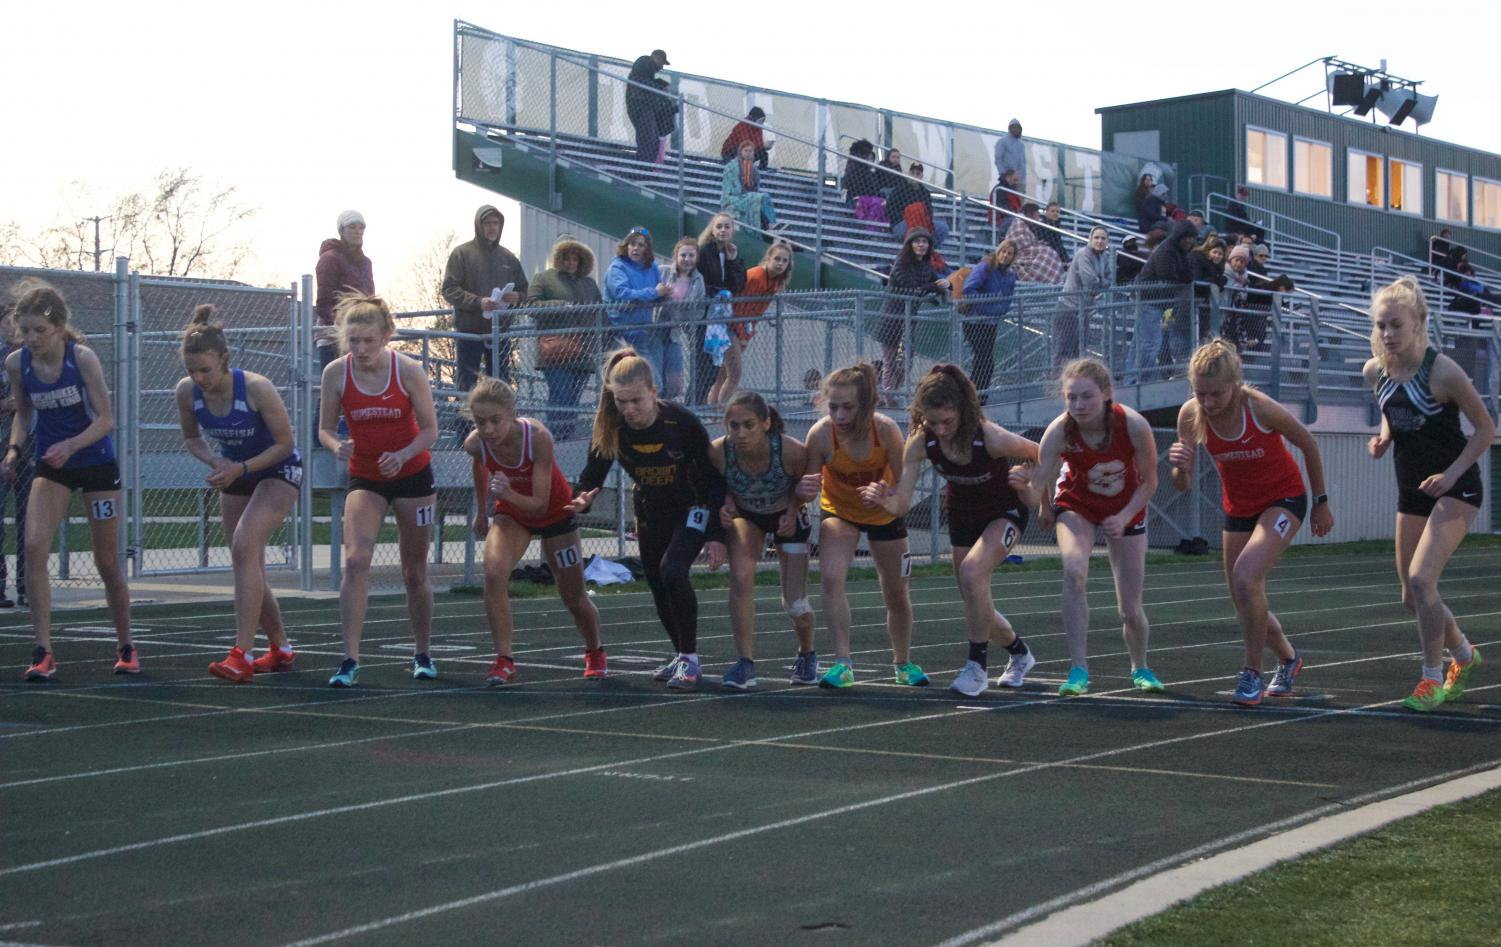 Runners line up for the girls 3200 meter run.